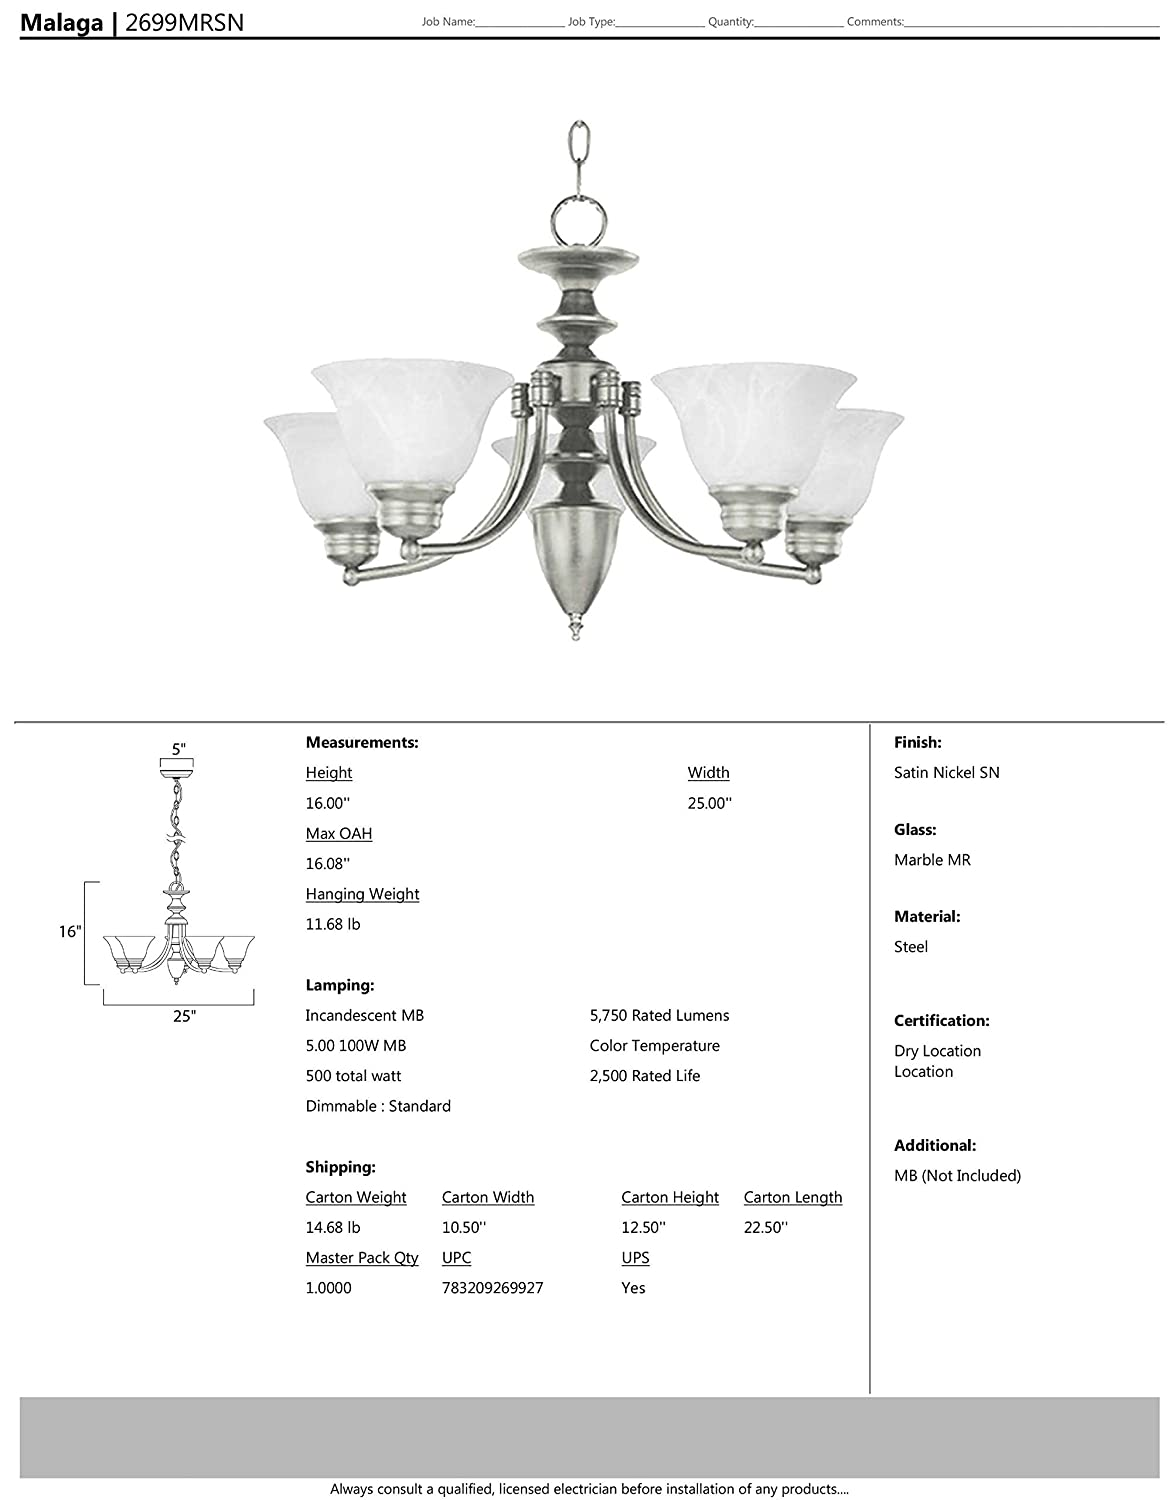 Standard Dimmable Opal Glass Shade Material 2300 Rated Lumens Maxim Lighting 60W Max. MB Incandescent Incandescent Bulb Marble Glass Kentucky Bronze Finish Damp Safety Rating Maxim 2655MRKB Pacific 5-Light Chandelier